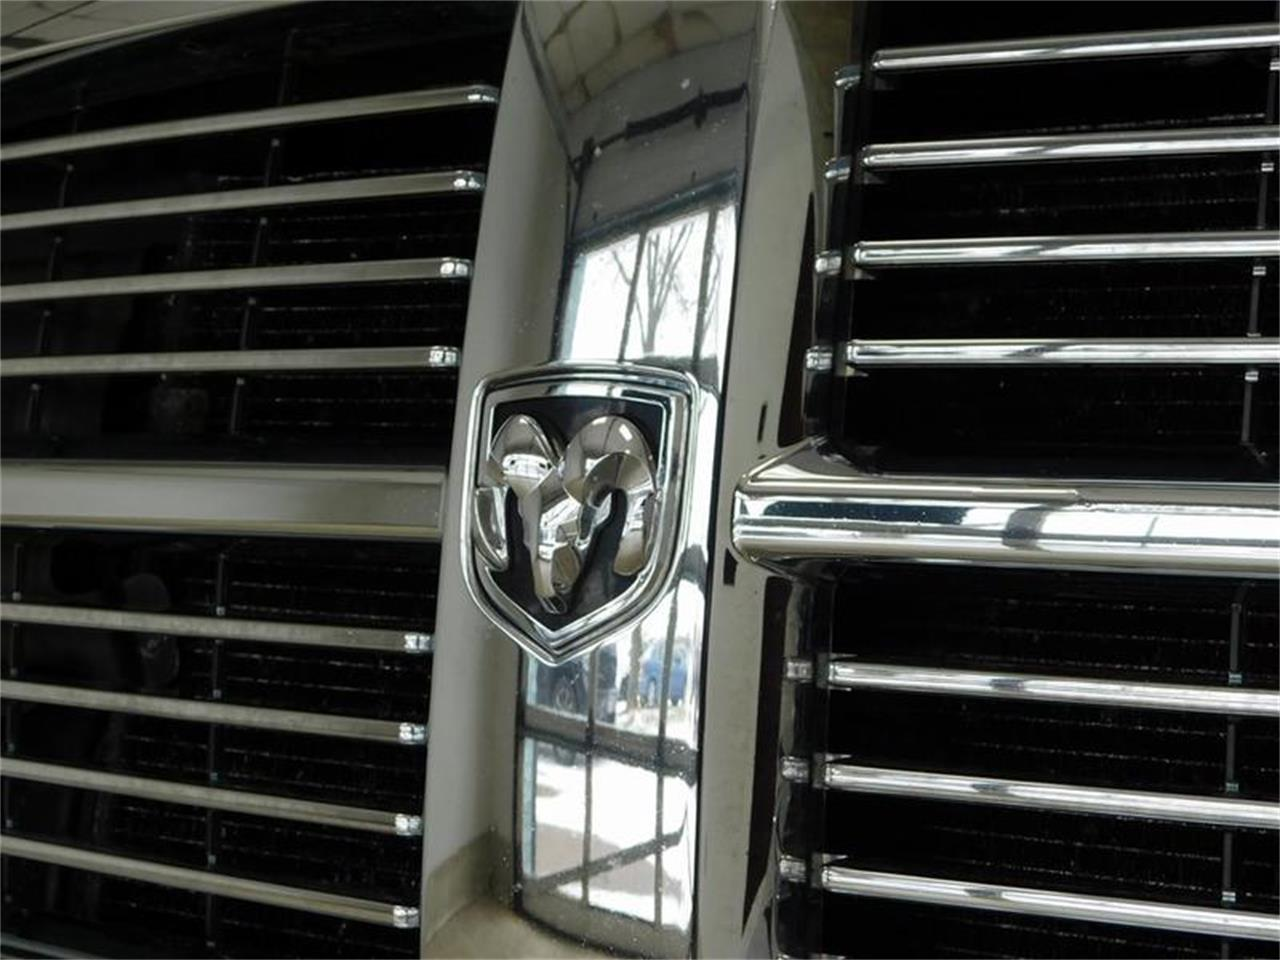 2009 Dodge Ram 3500 for sale in Hamburg, NY – photo 41